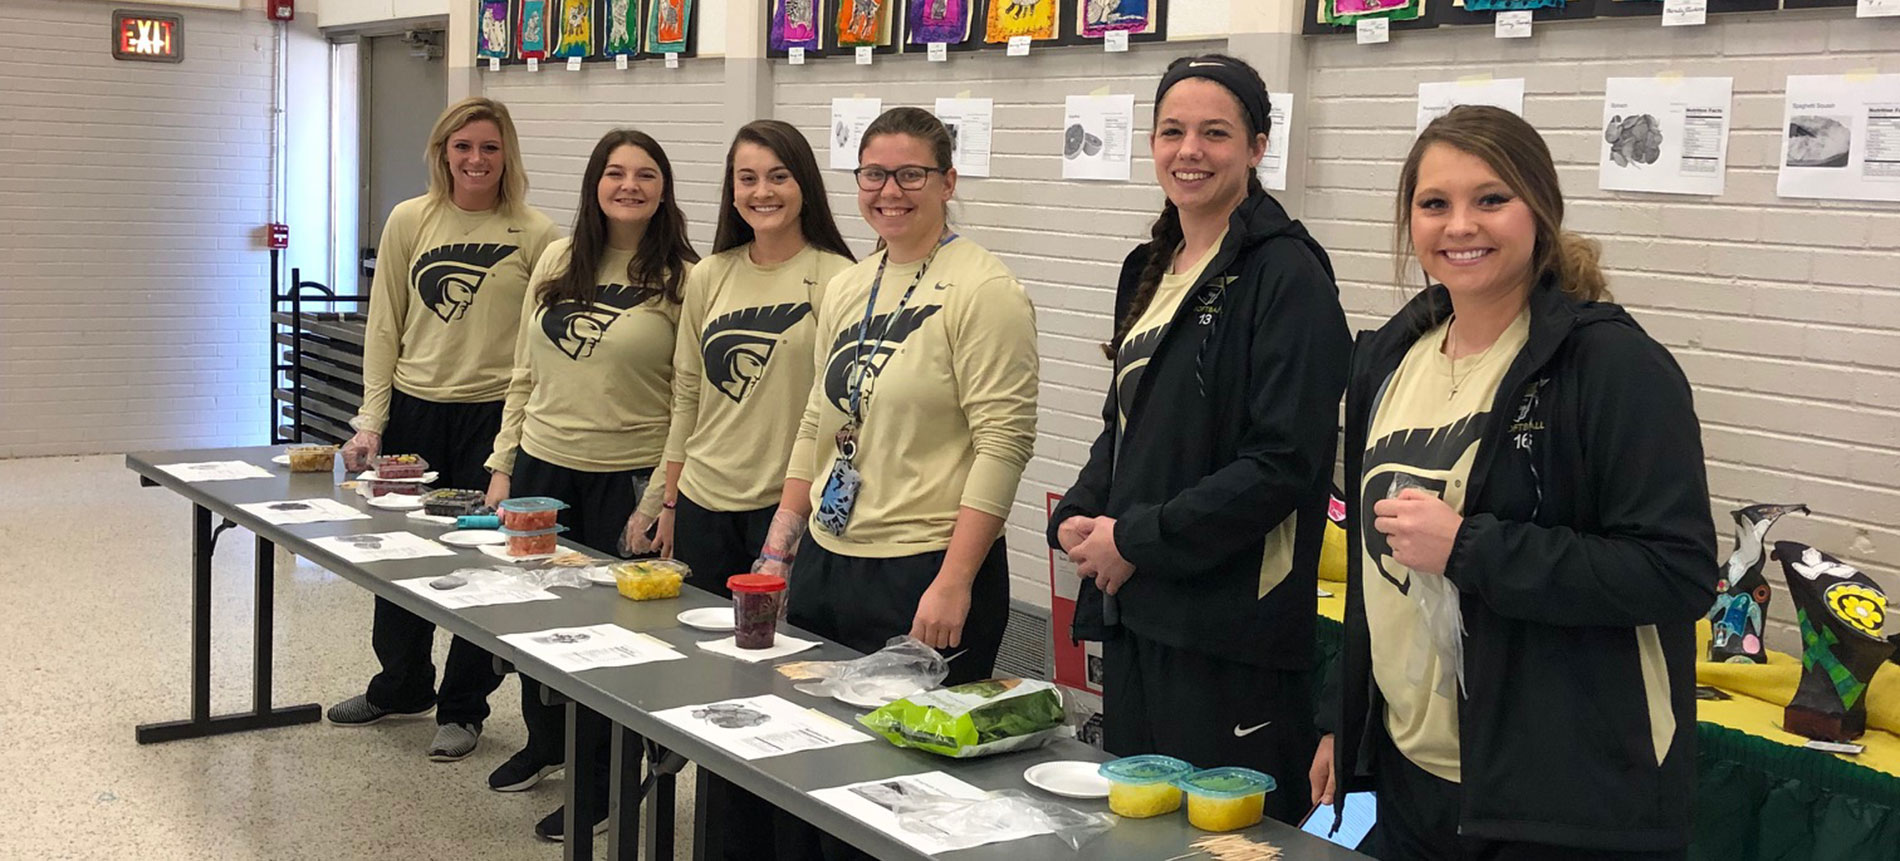 Softball Participates in Nutrition Day at St. Joseph Catholic School